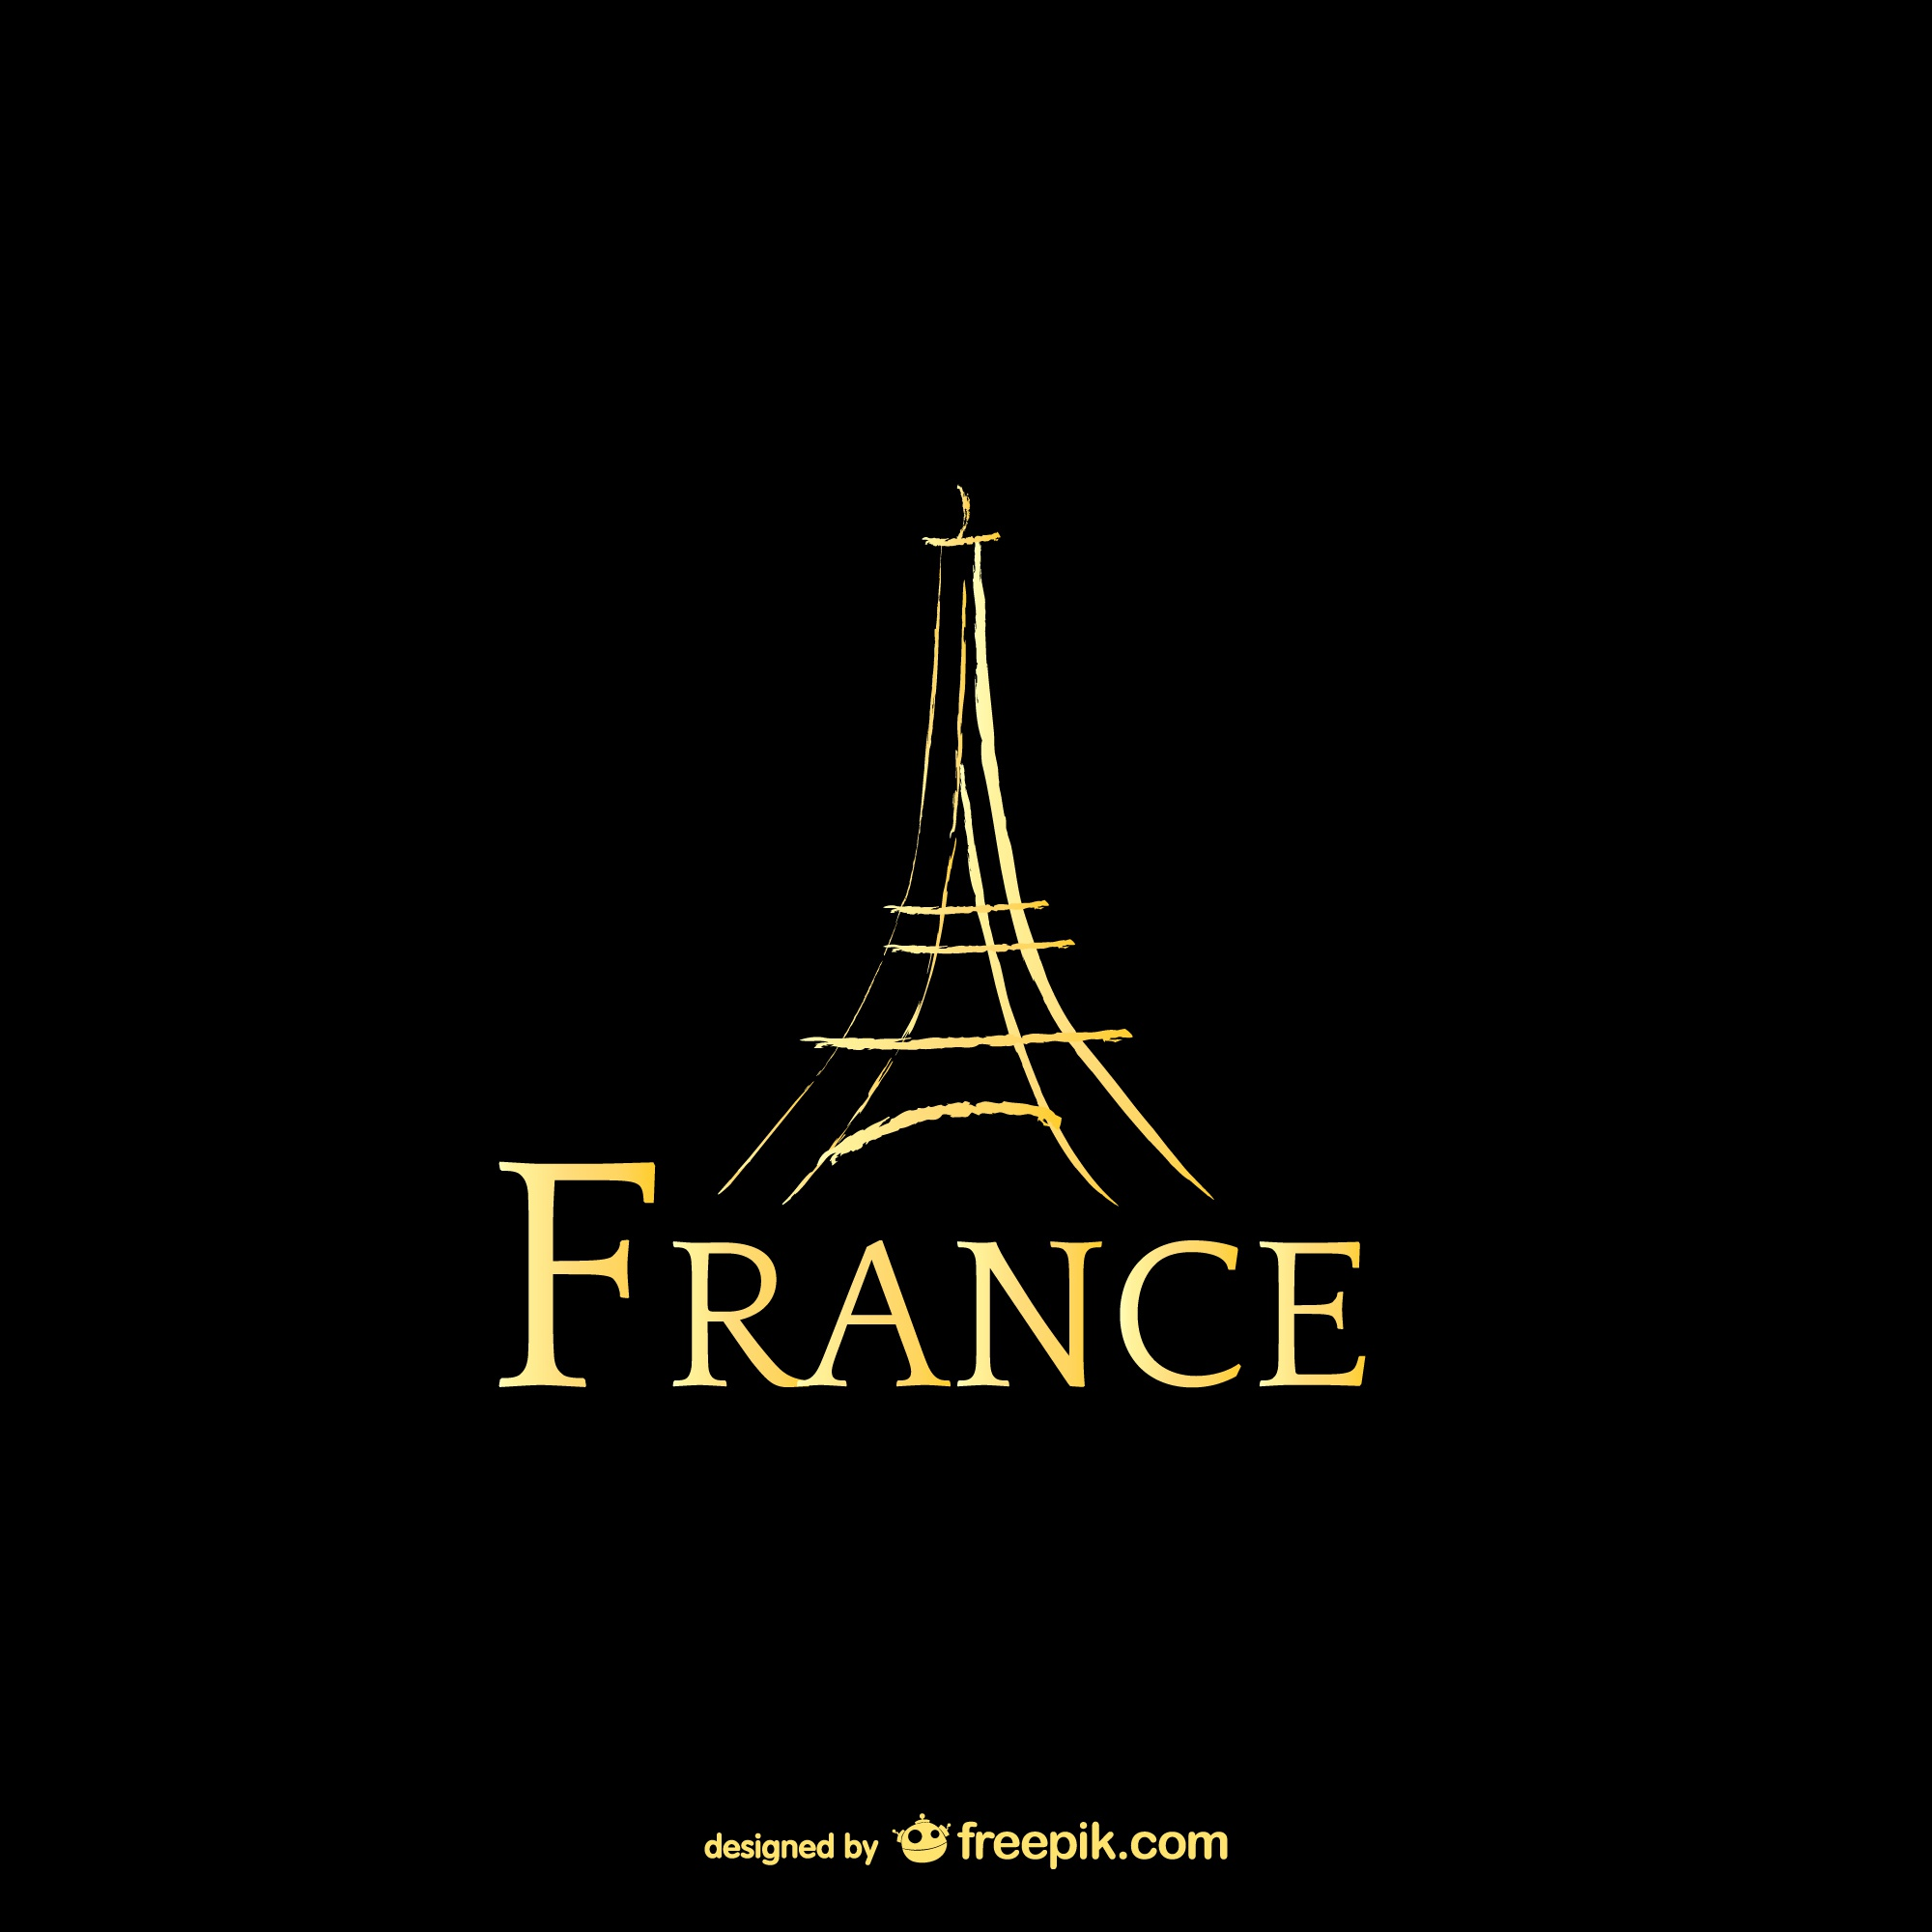 France et Tour Eiffel logo